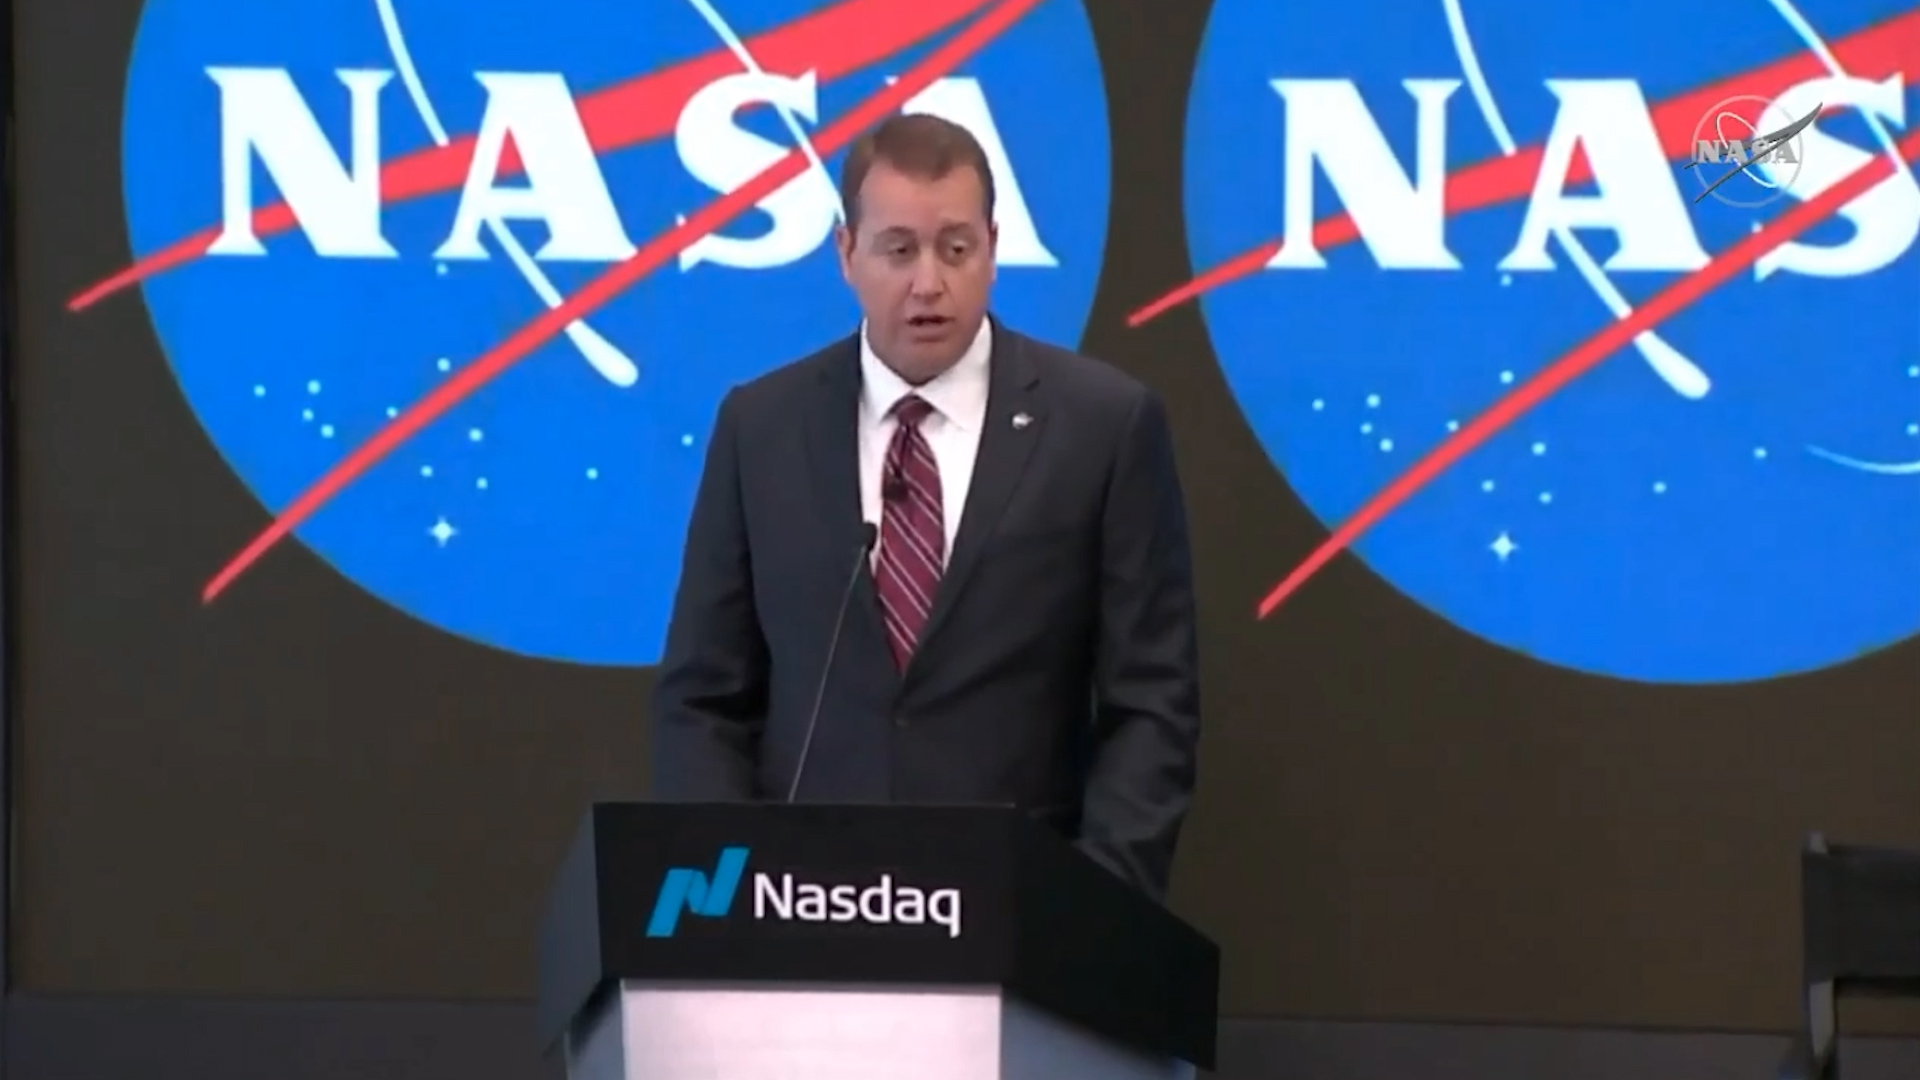 NASA invites tourists to space station, while a Trump tweet casts doubt on his own administration's moon plan